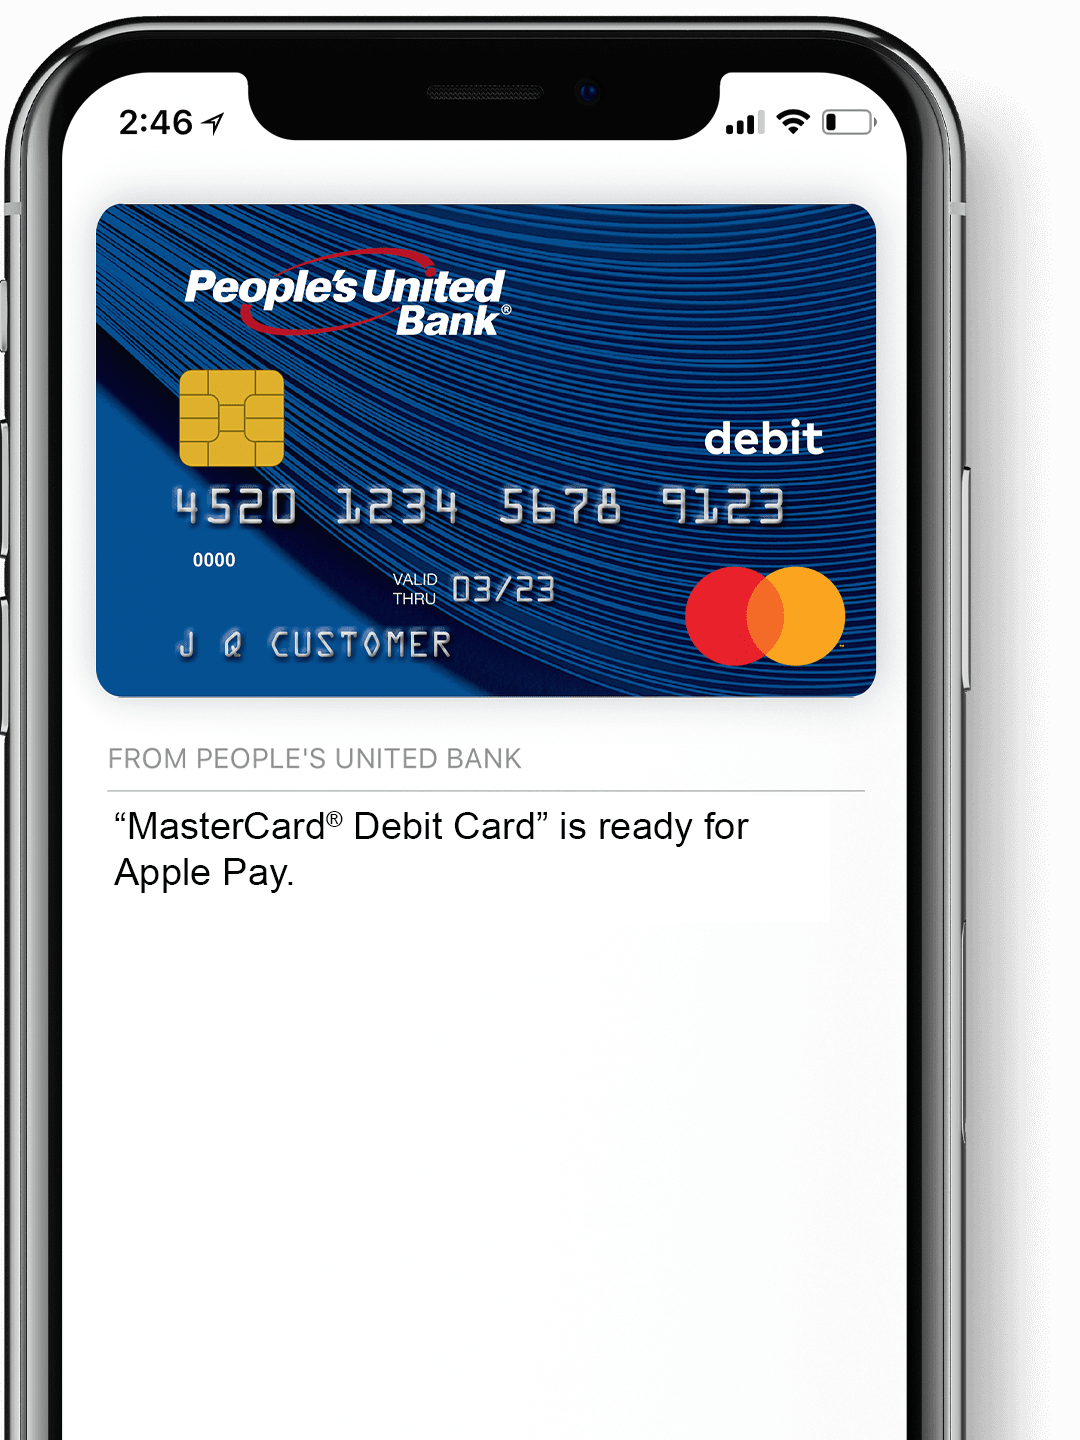 Mobile phone showing a People's United Bank debit card on screen, ready for use with Apple Pay